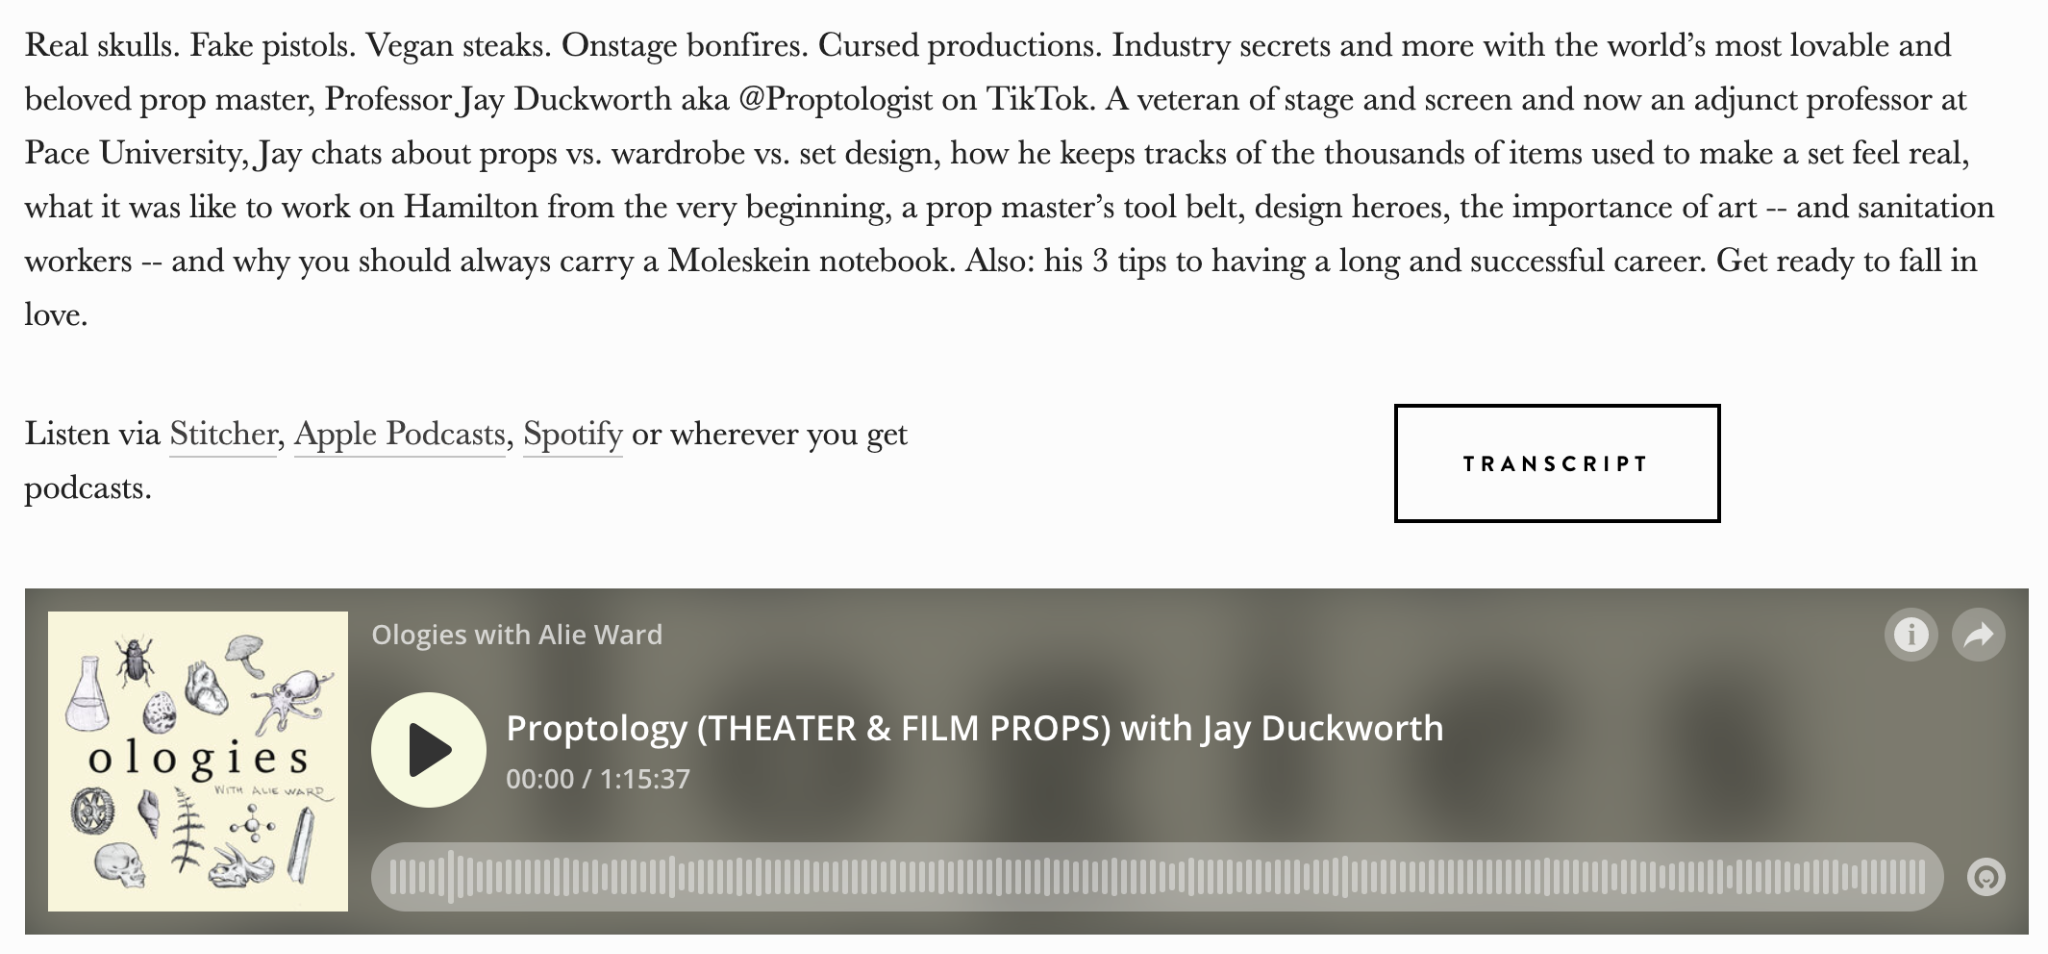 A screenshot of a post from alieward.com about the Ologies episode Proptology with Jay Duckworth. it opens with a paragraph-long episode description, followed by links to listen to the episode on Stitcher, Apple and Spotify, a link to the transcript, and ends with an embedded player featuring the episode. End ID.